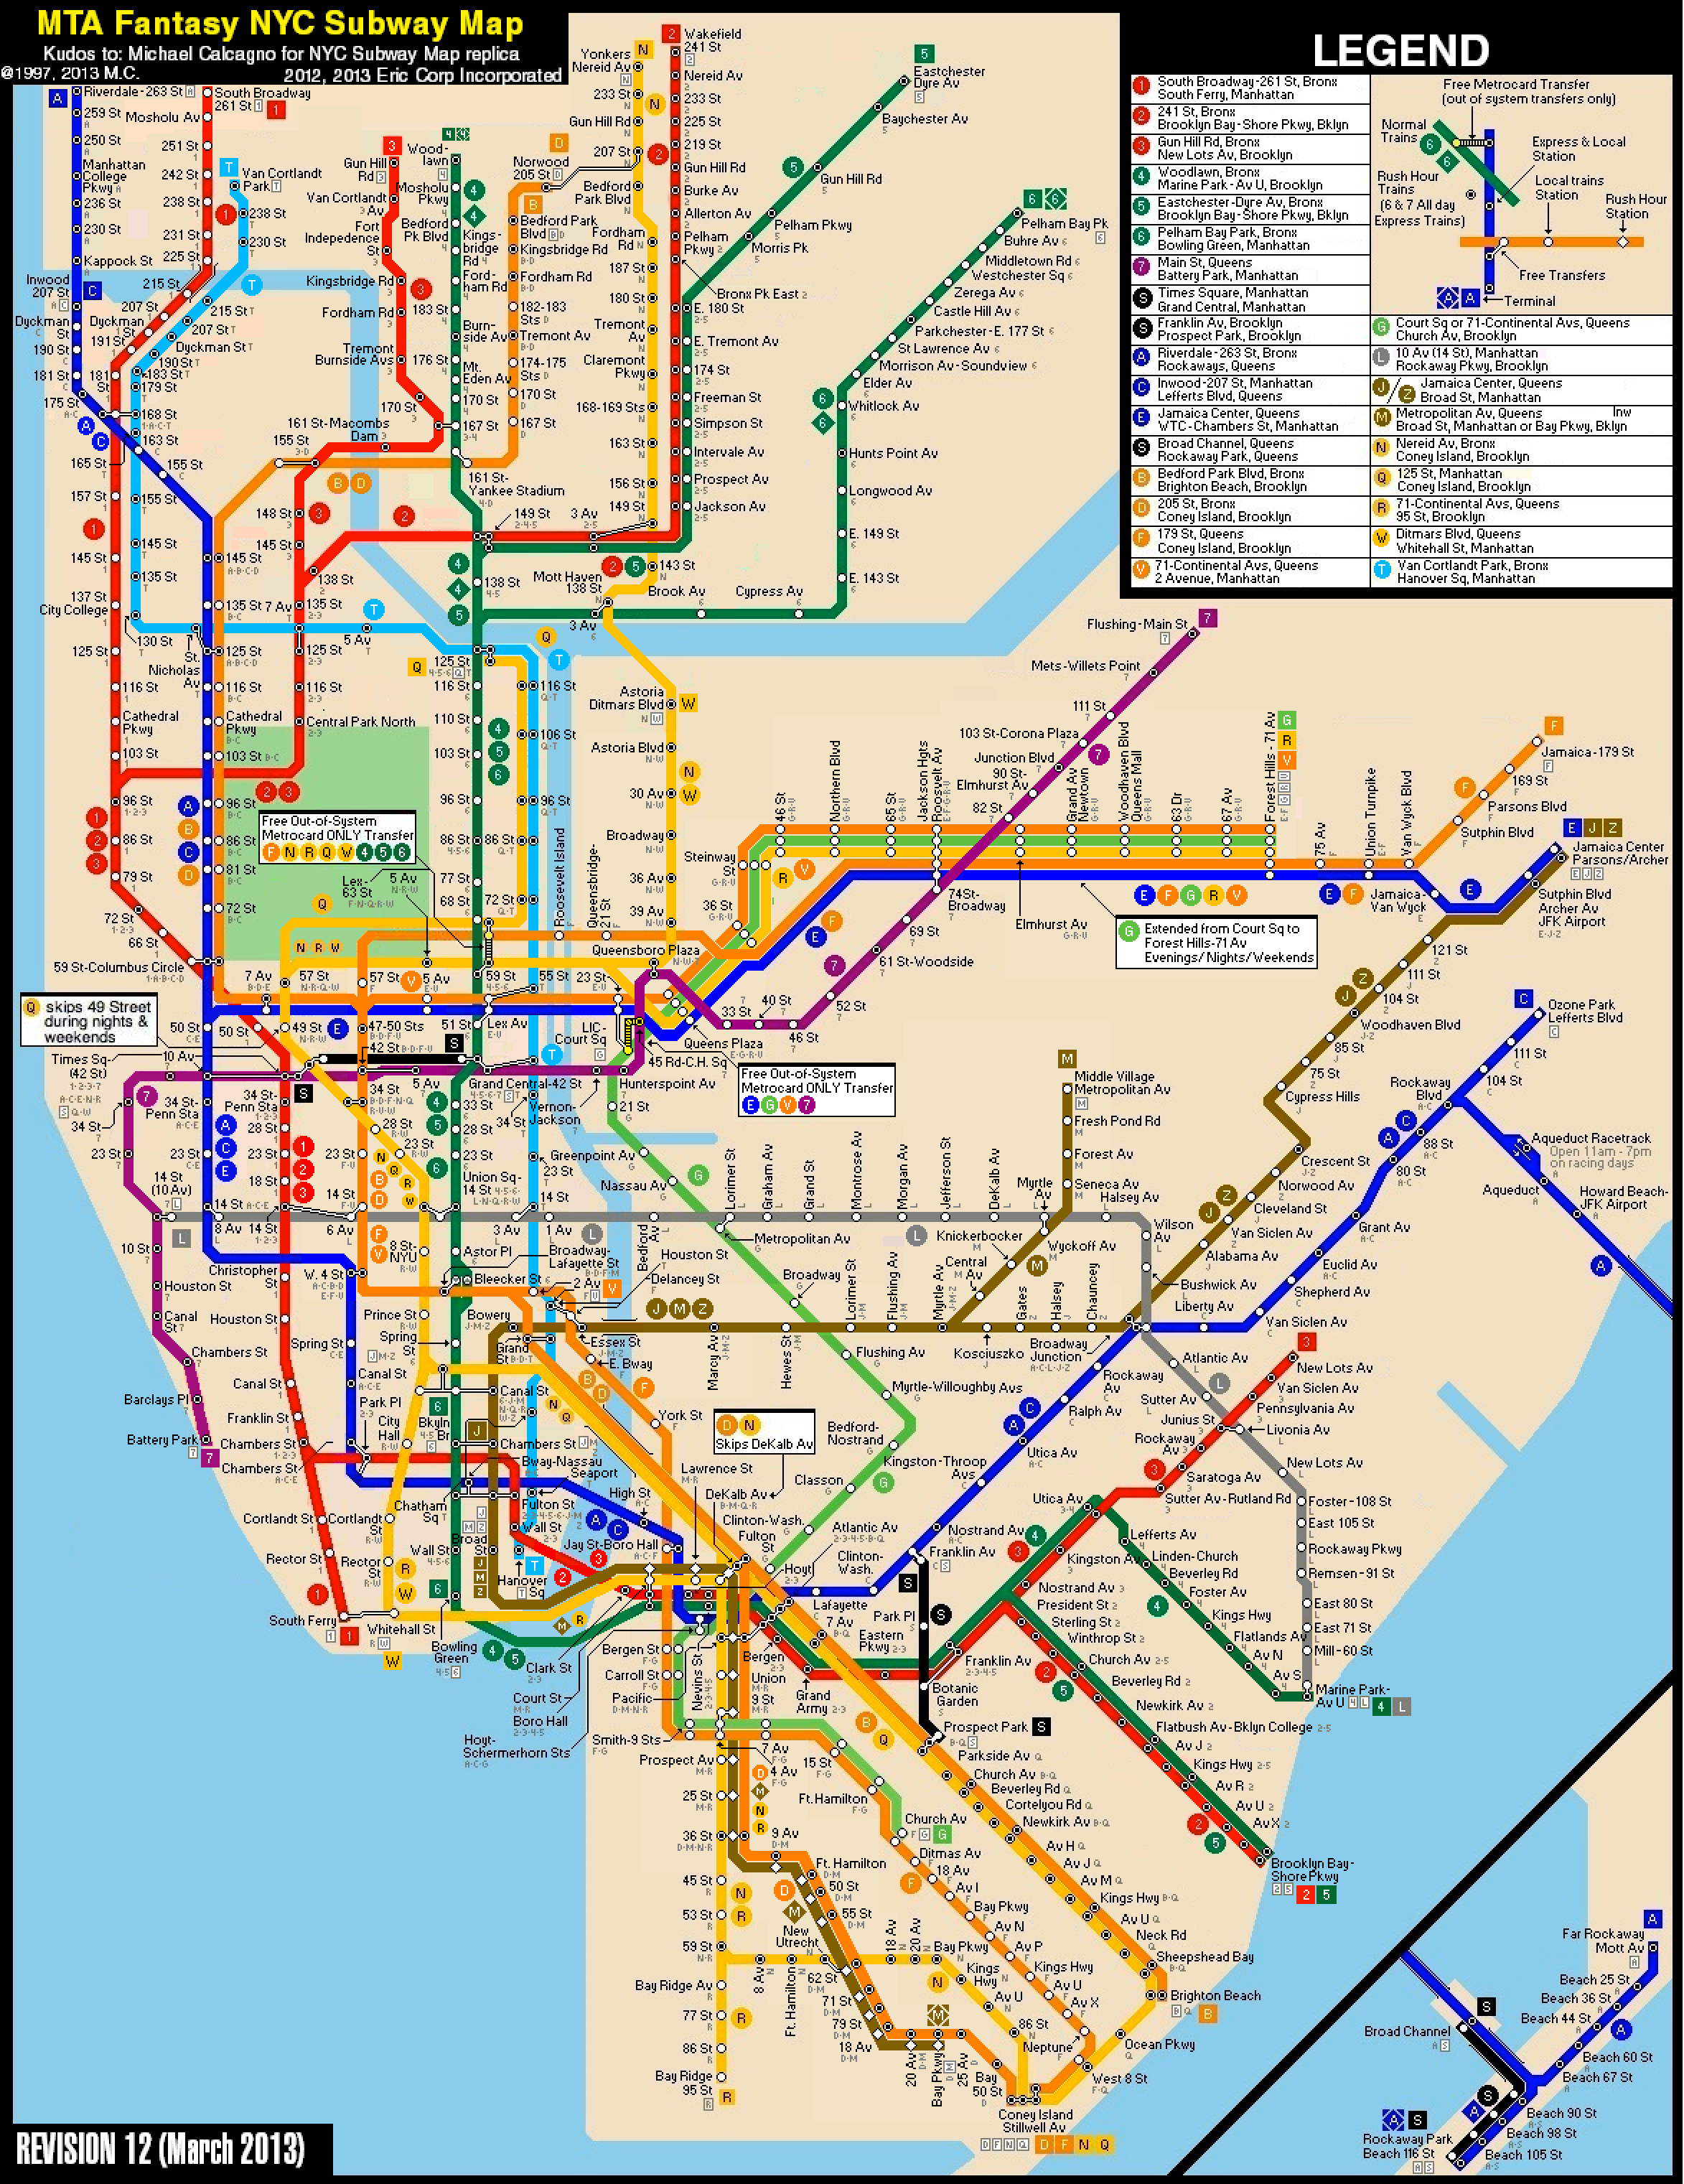 Subway Map D Train.Subway Map D Train Smoothoperators